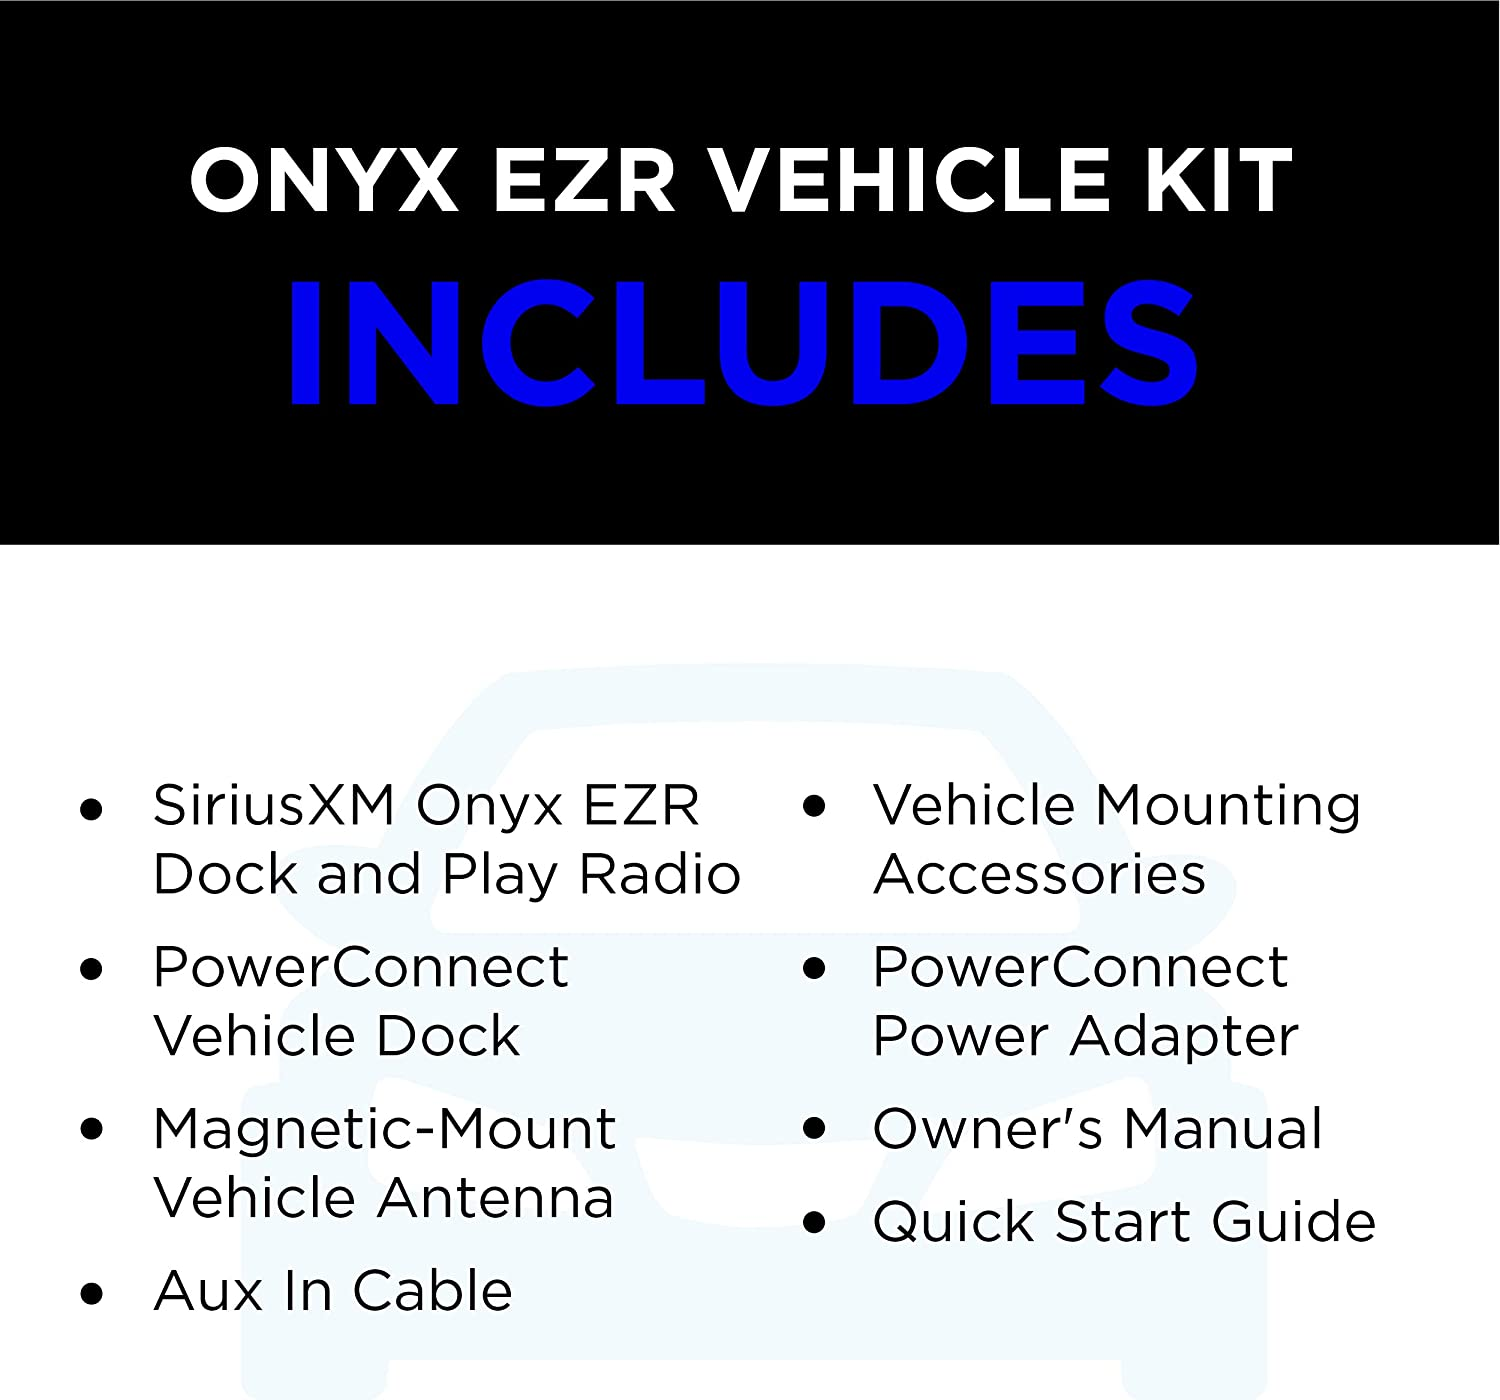 SXEZR1V1 GDISXTTR2 and SiriusXM Wi-Fi Table Radio SiriusXM All Access Bundle Includes Onyx EZR Vehicle Dock and Play